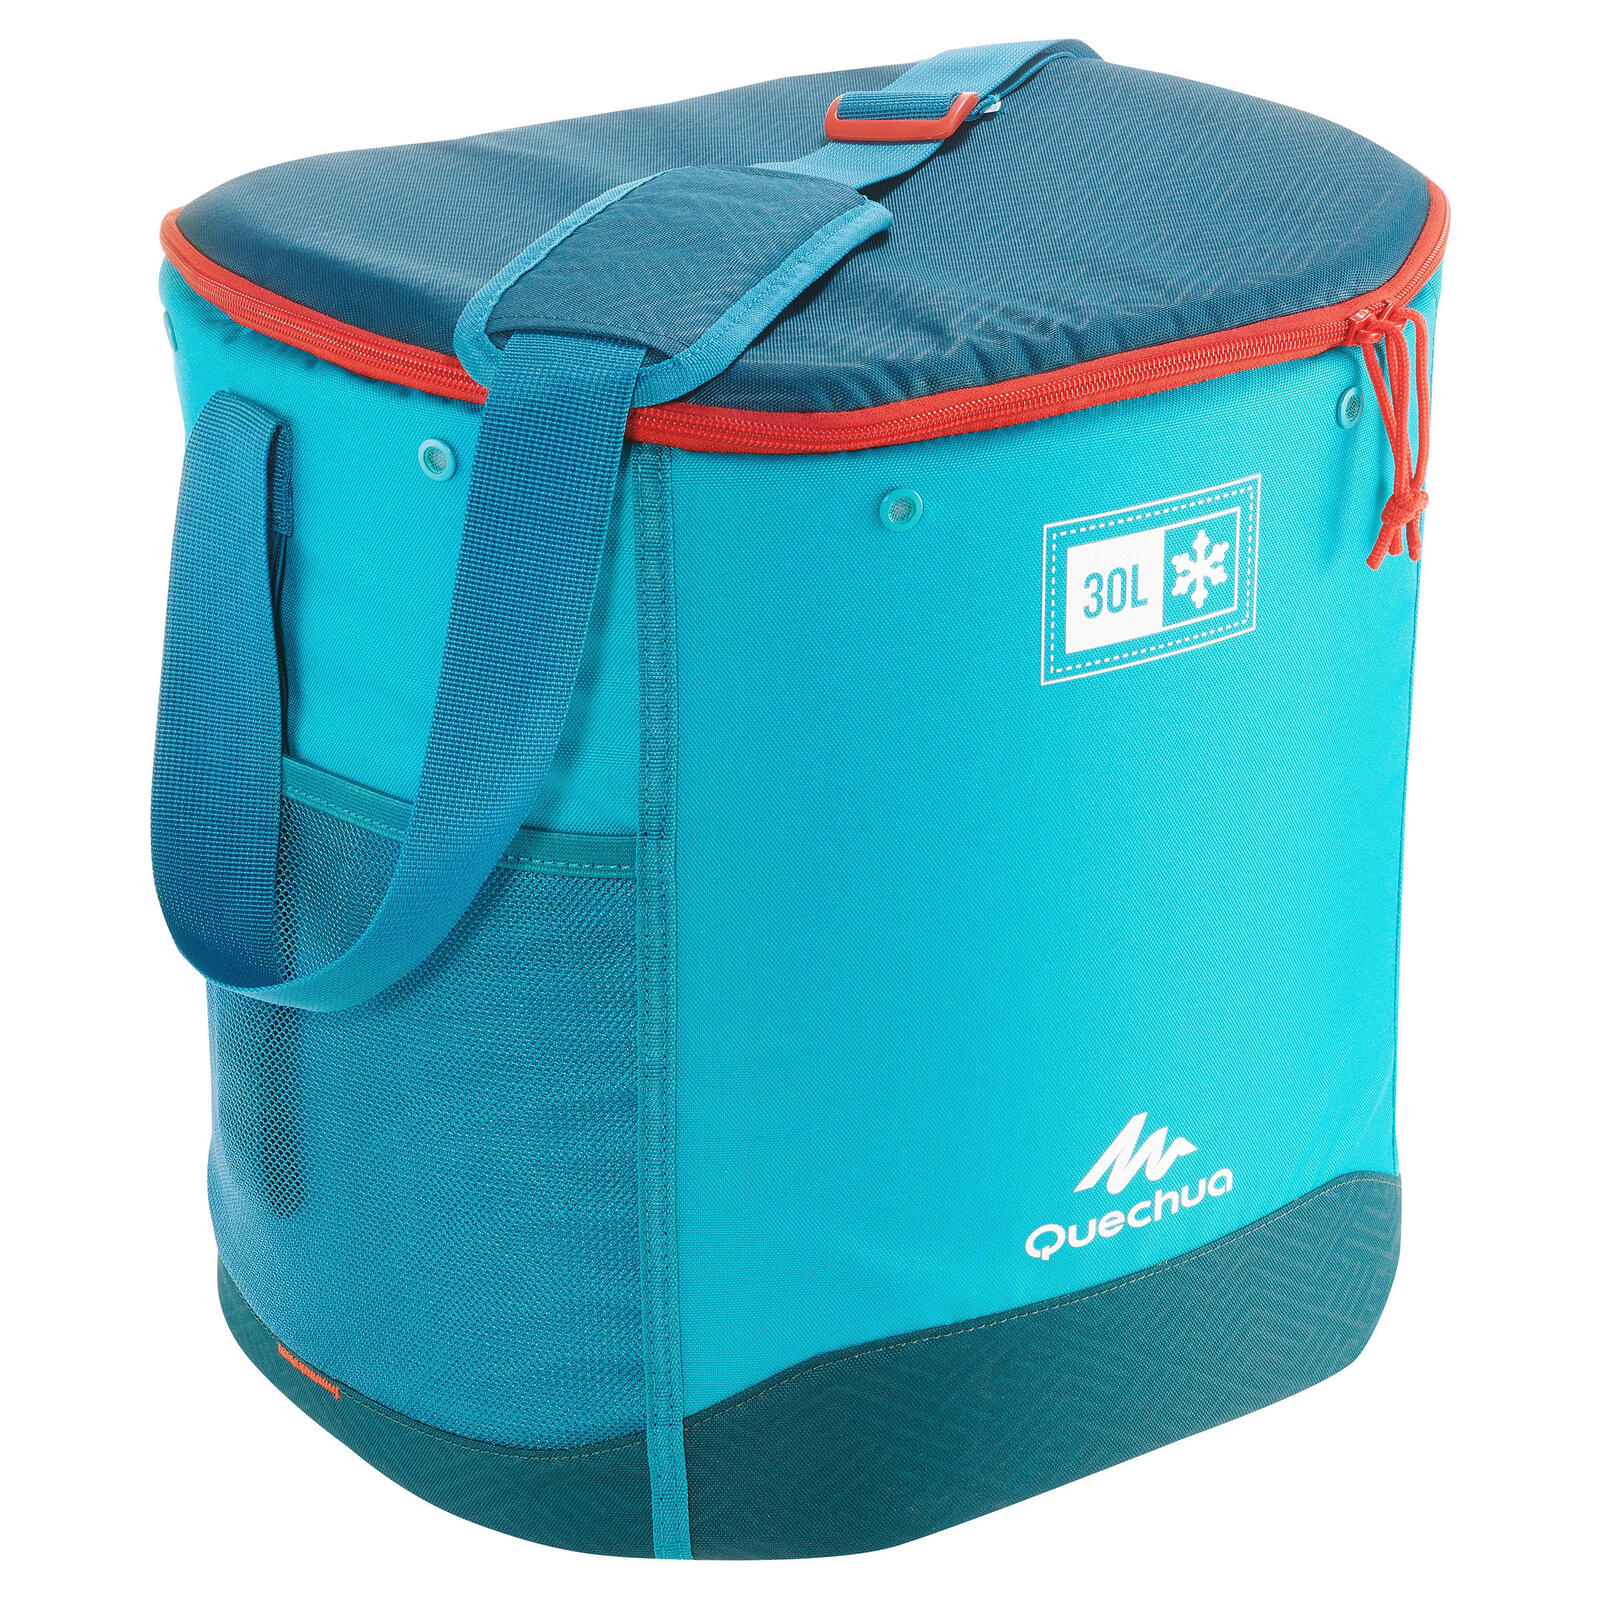 Camping or hiking cooler - compact – 30 l